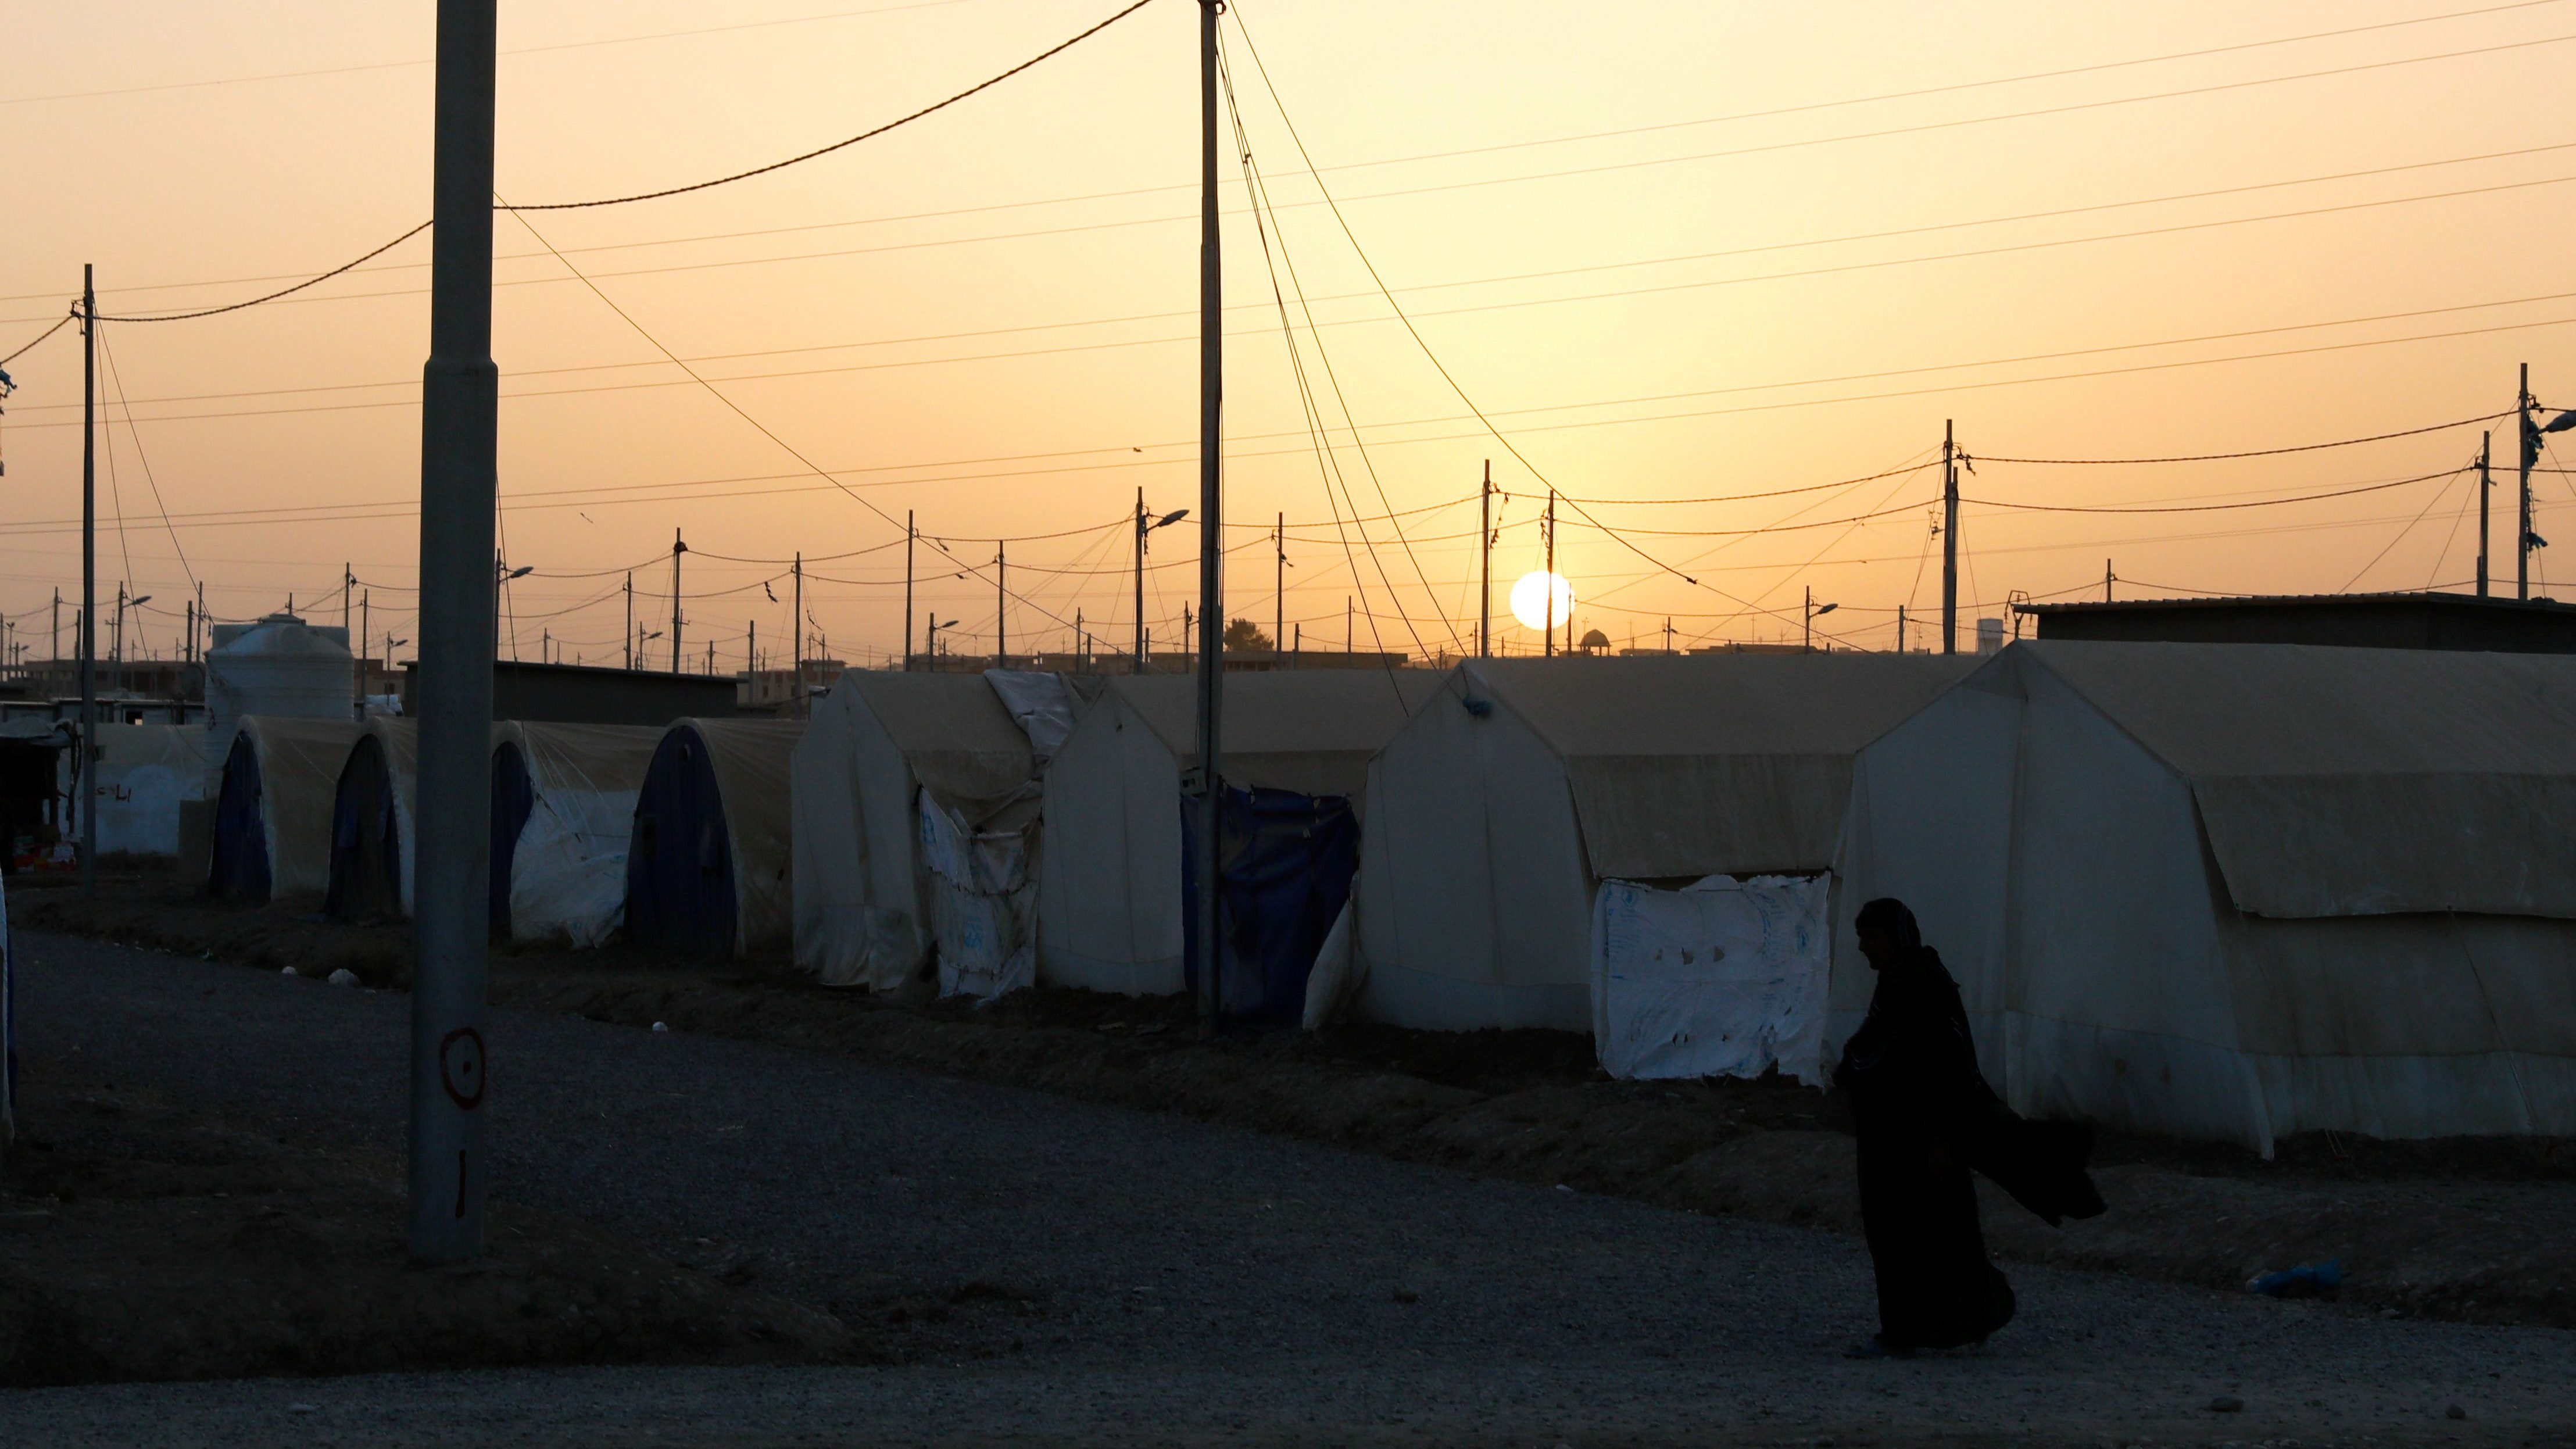 A displaced Iraqi woman from Mosul walks towards her family's tent for their Iftar, during the Muslim holy month of Ramadan at a refugee camp al-Khazir in the outskirts of Erbil, Iraq